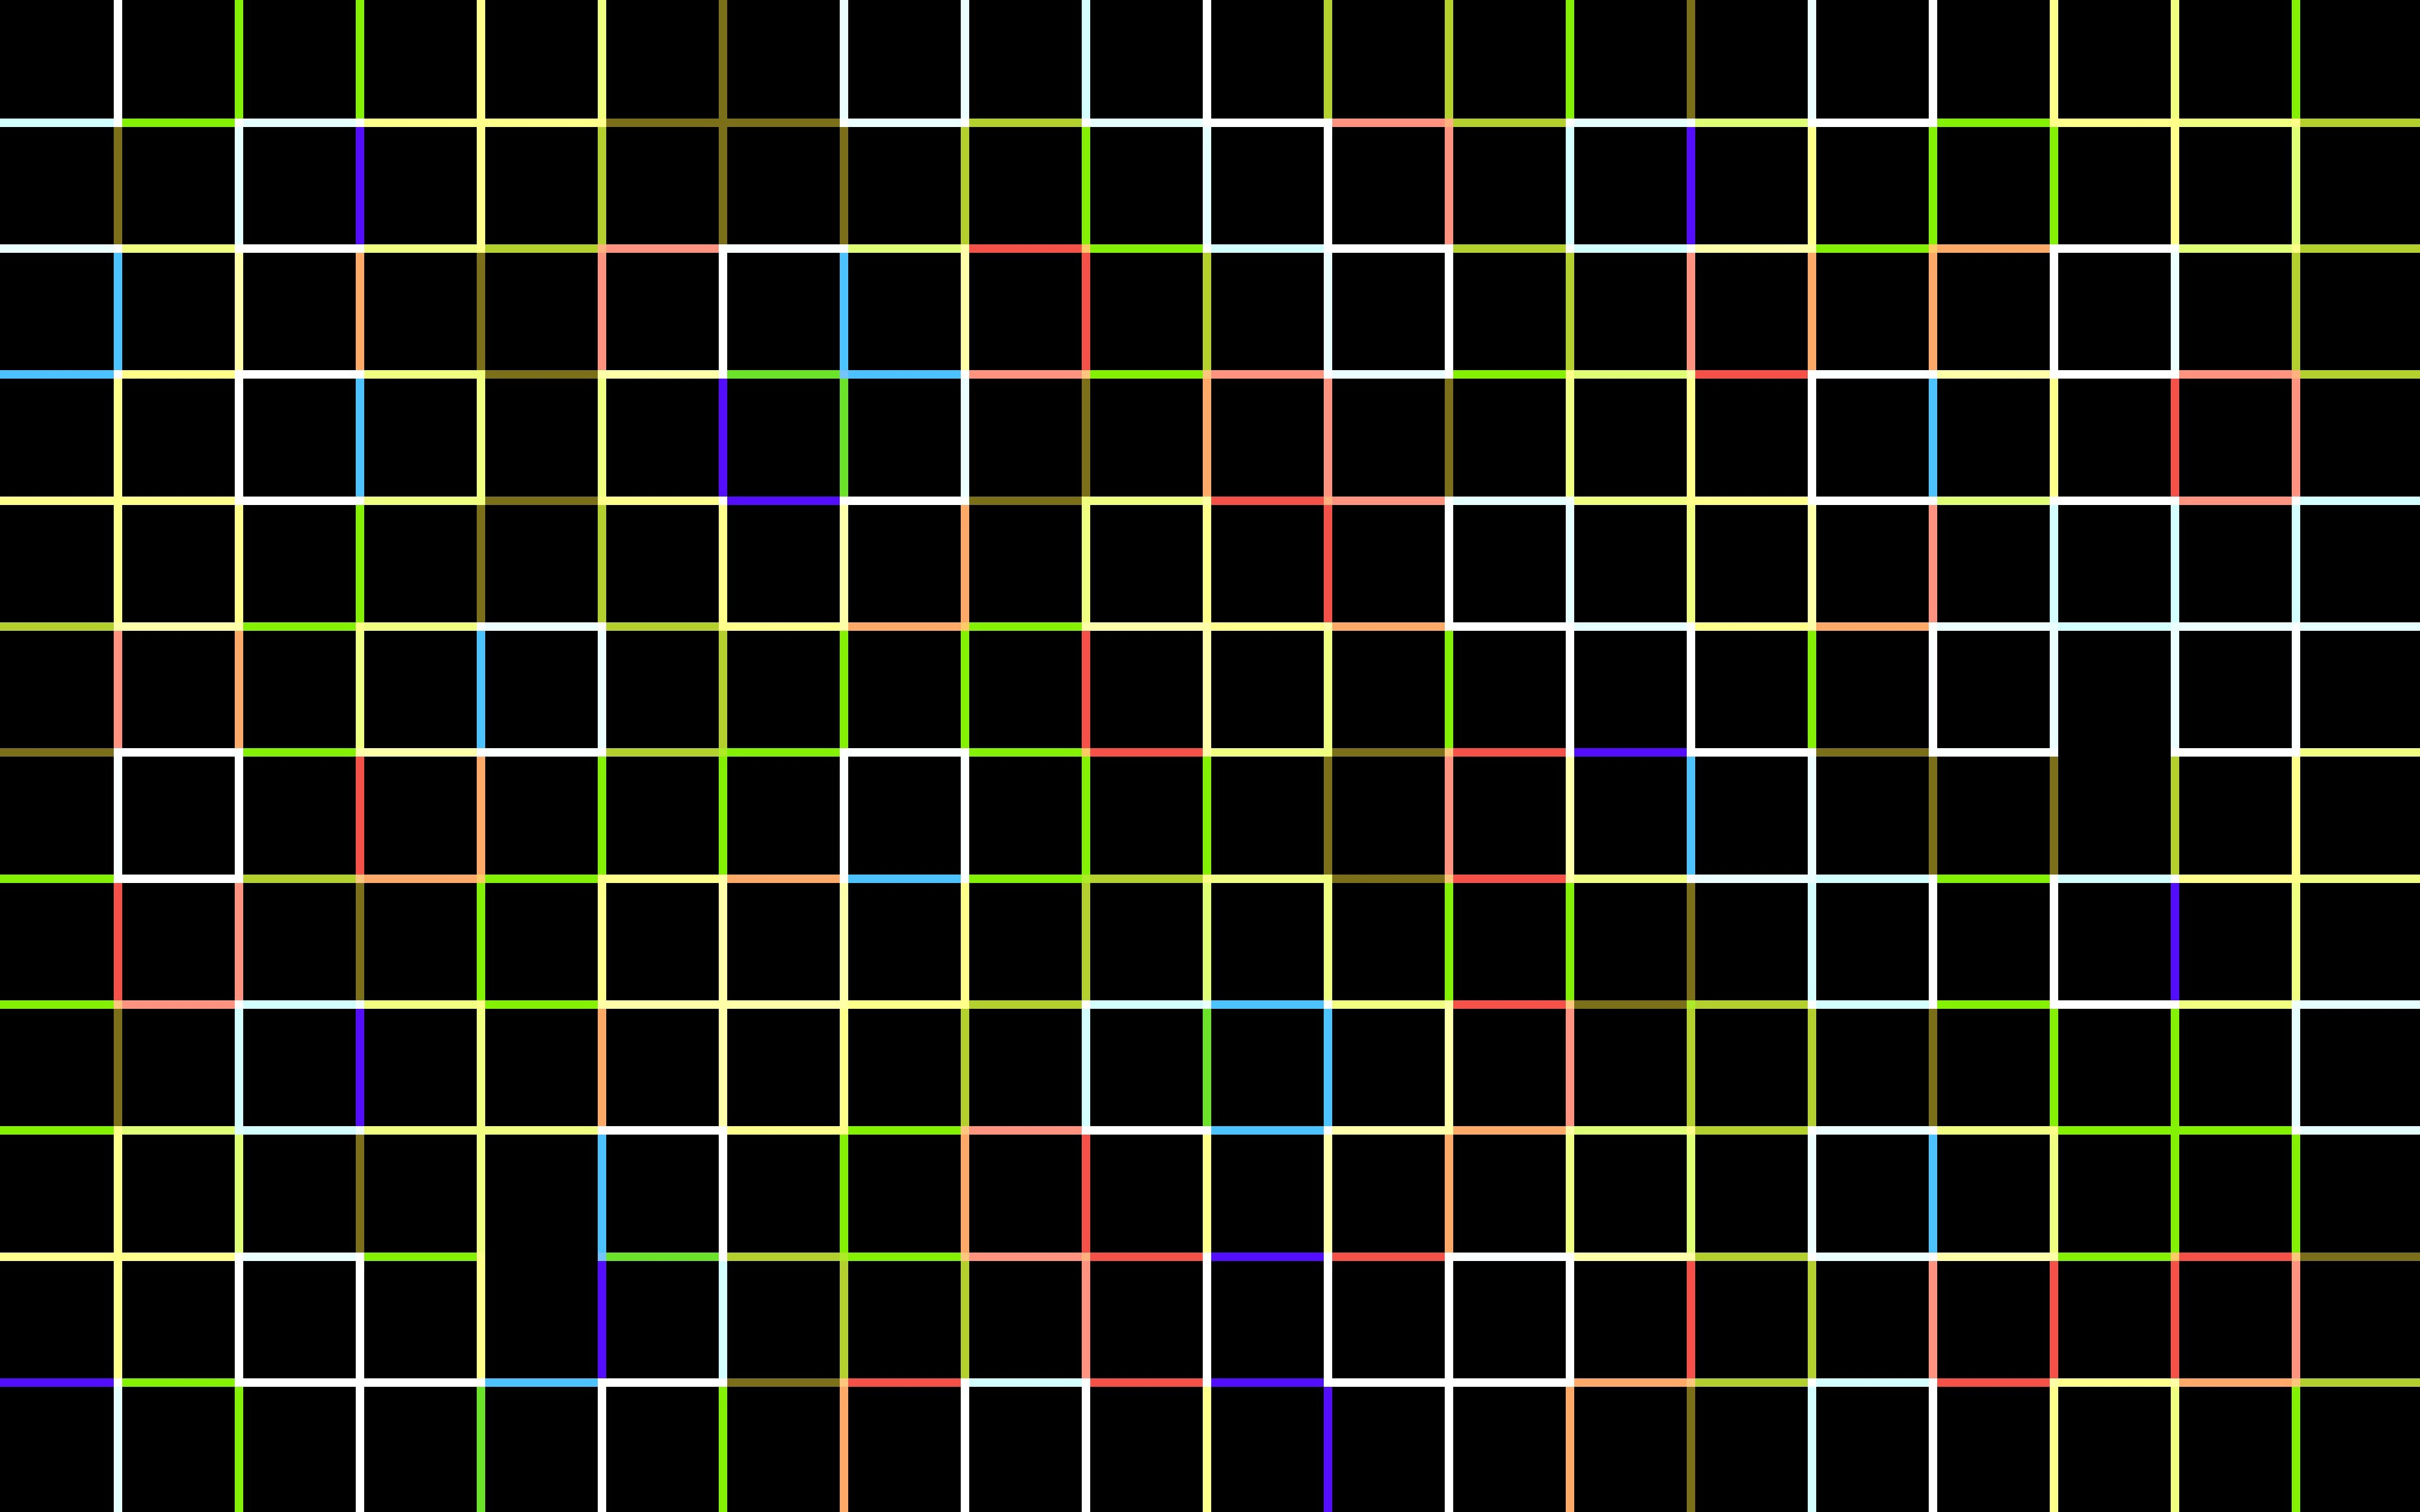 Flickr: Grid Patterns - Welcome to Flickr - Photo Sharing